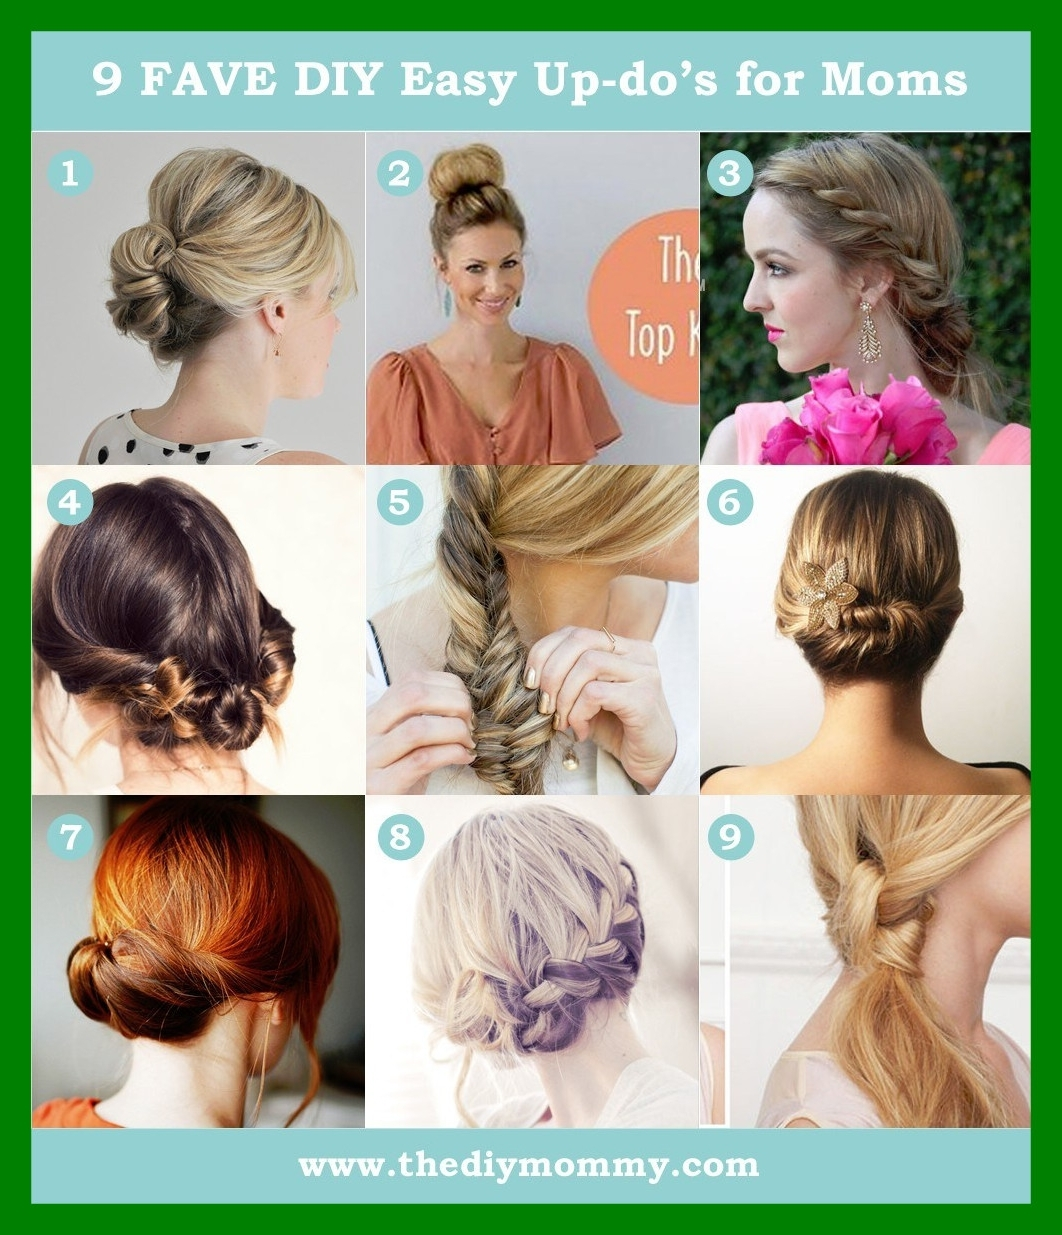 Astonishing Easy Wedding Hairstyles To Do Yourself Picture Of Within Most Popular Easy Wedding Hairstyles For Bridesmaids (View 2 of 15)